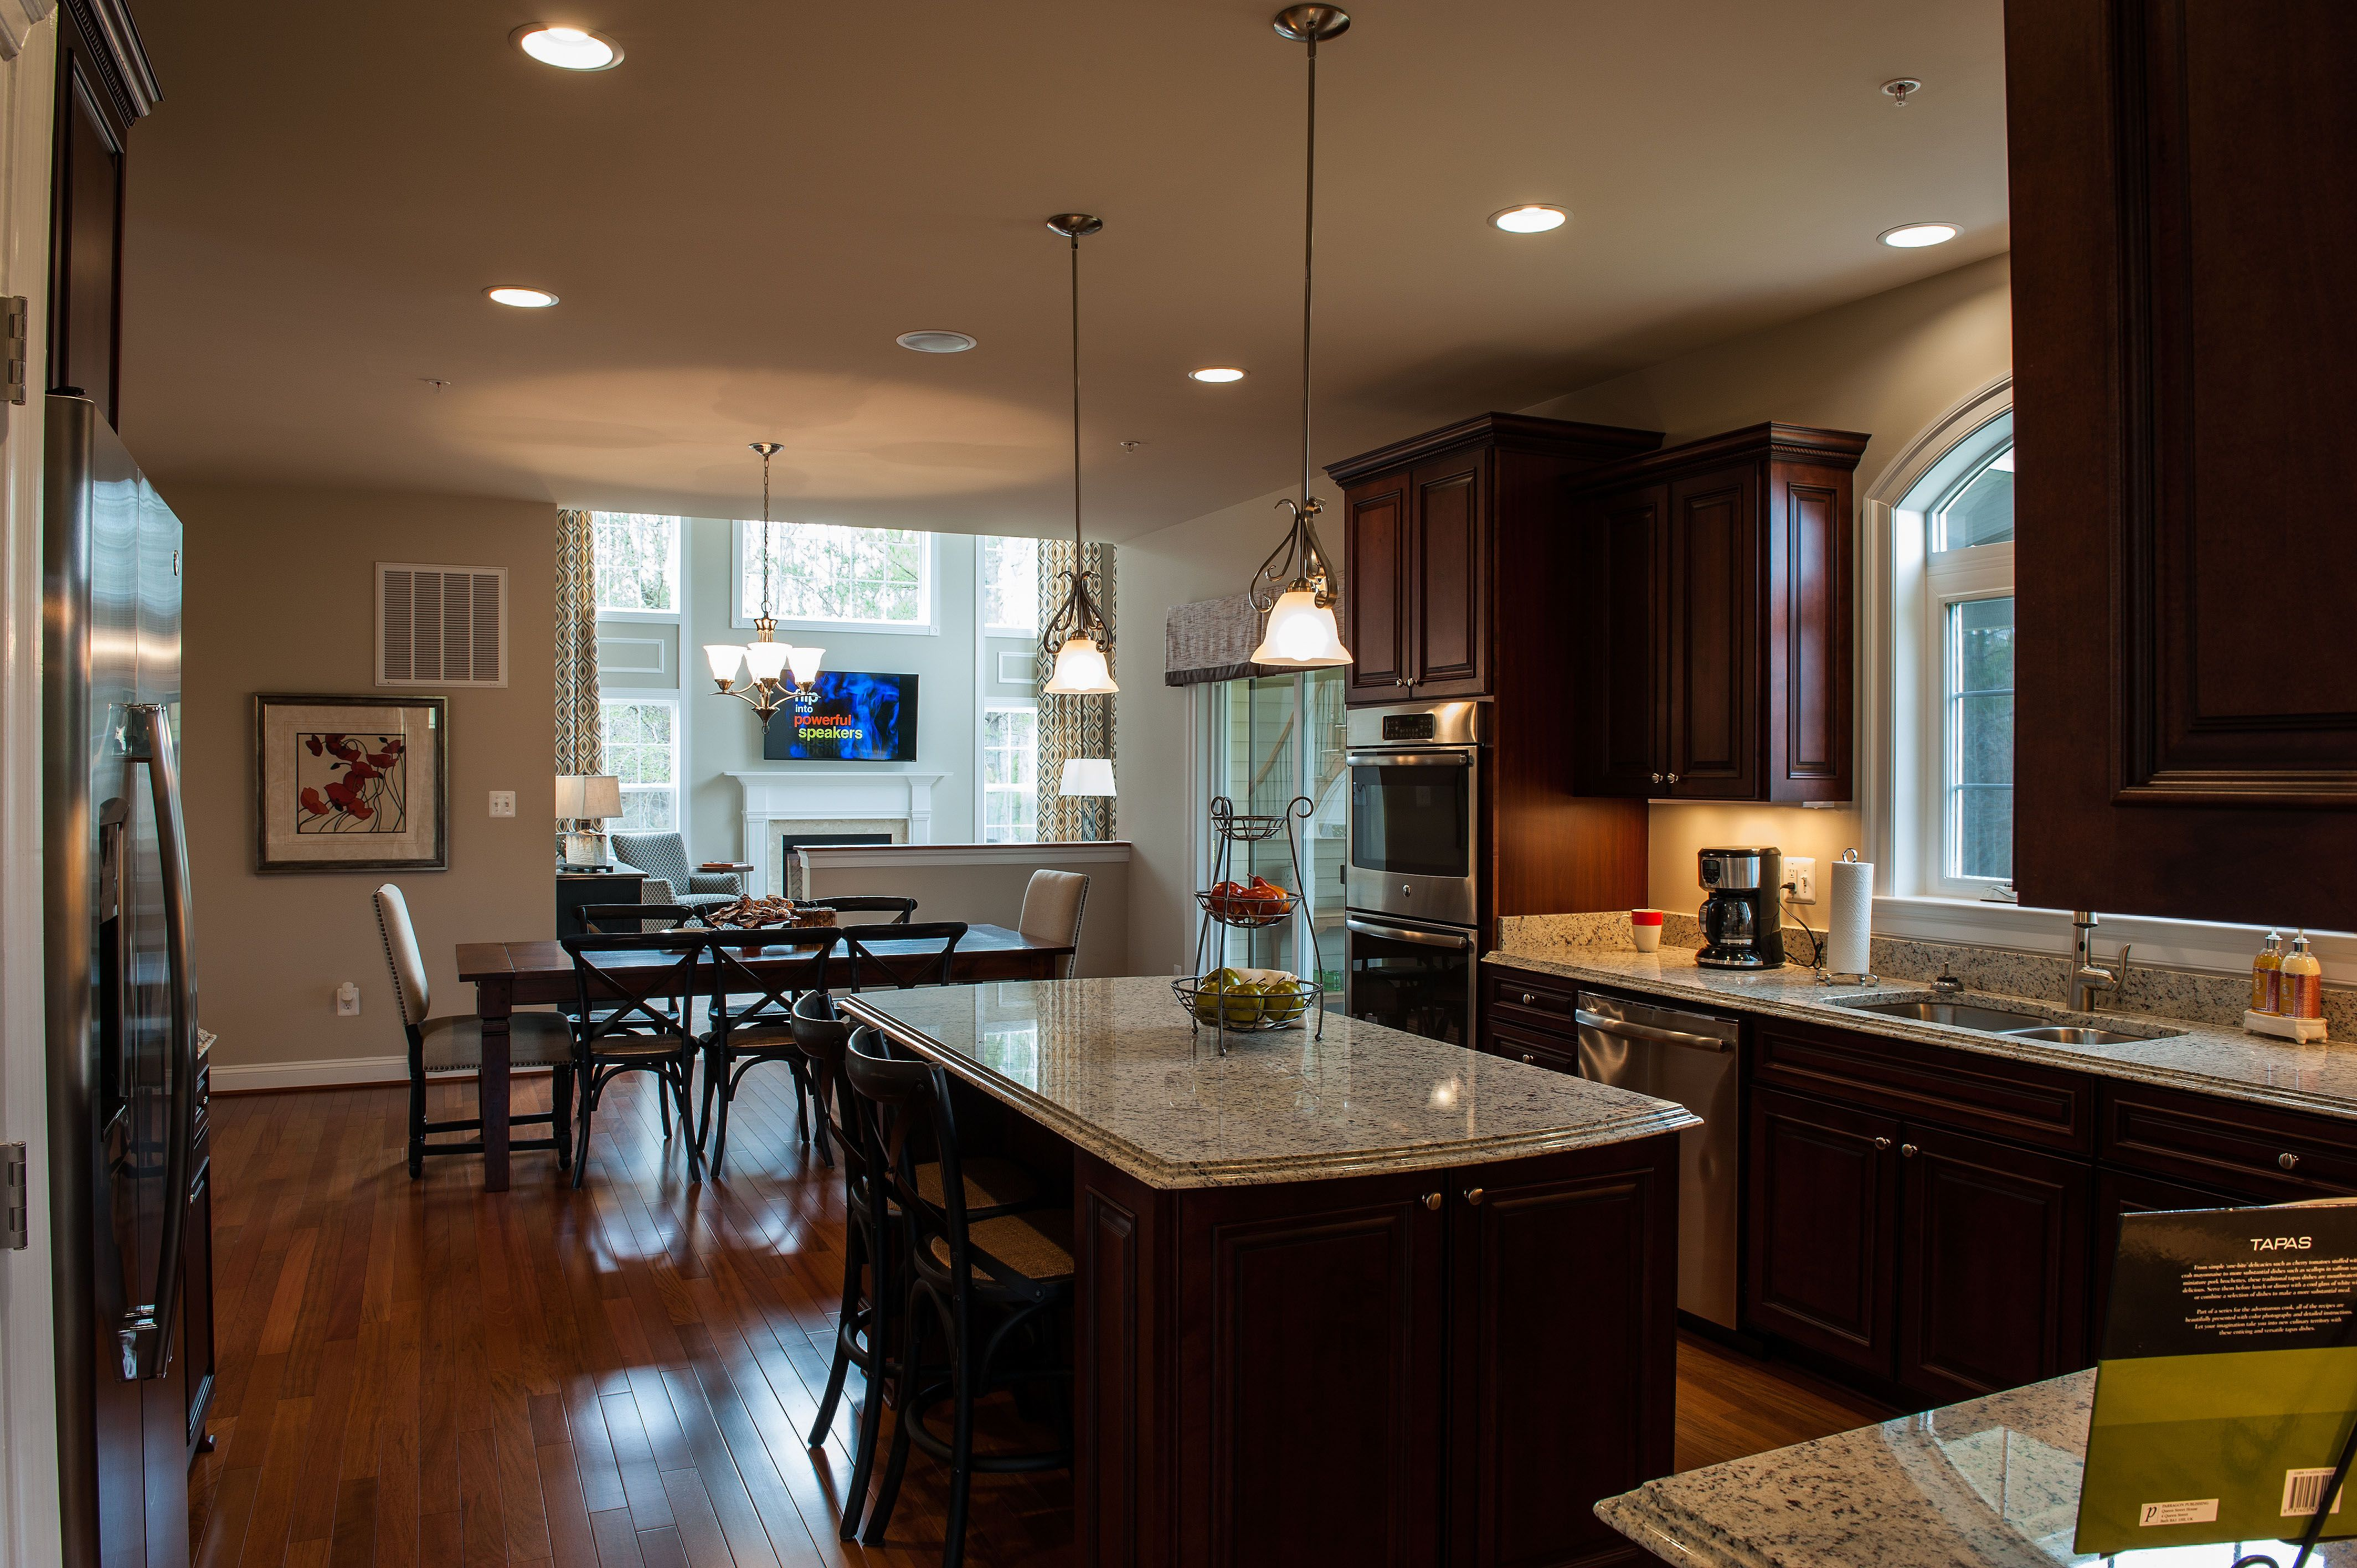 Coachman S Path Kitchen Http Www Qbhi Com Maryland Waldorf Coachmans Path Overview Home New Homes Kitchen